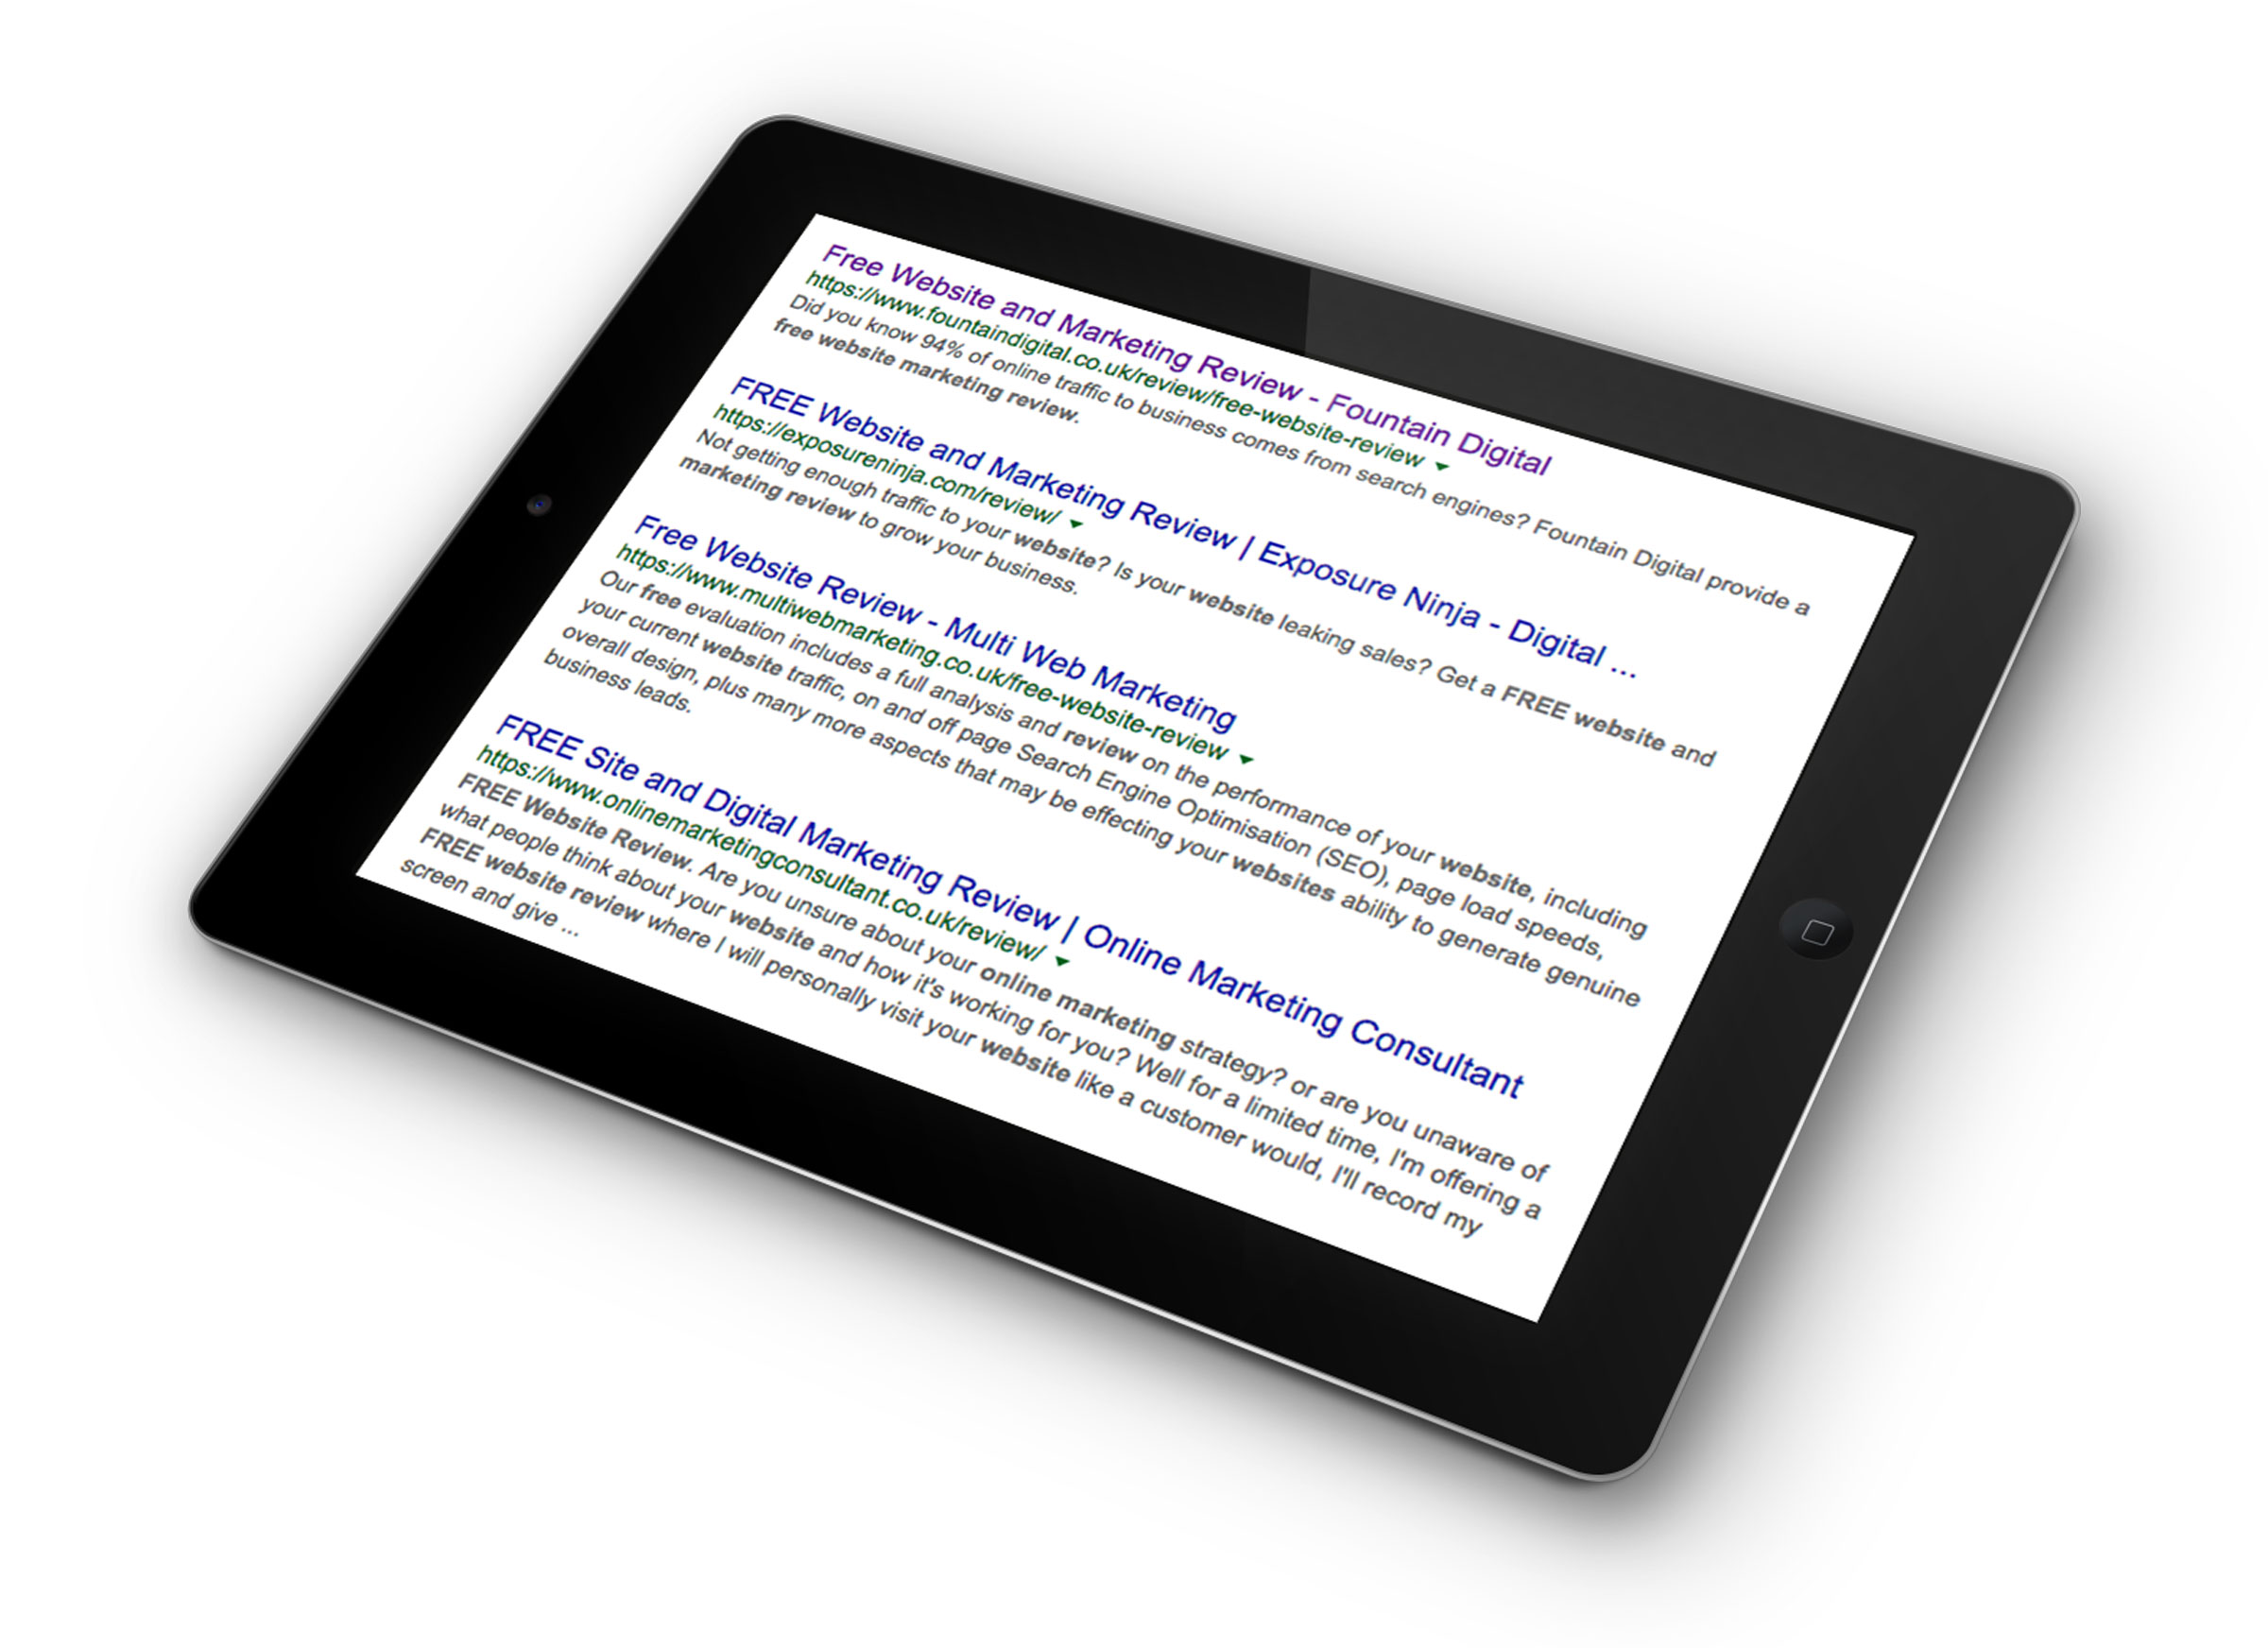 iPad image with Google search results